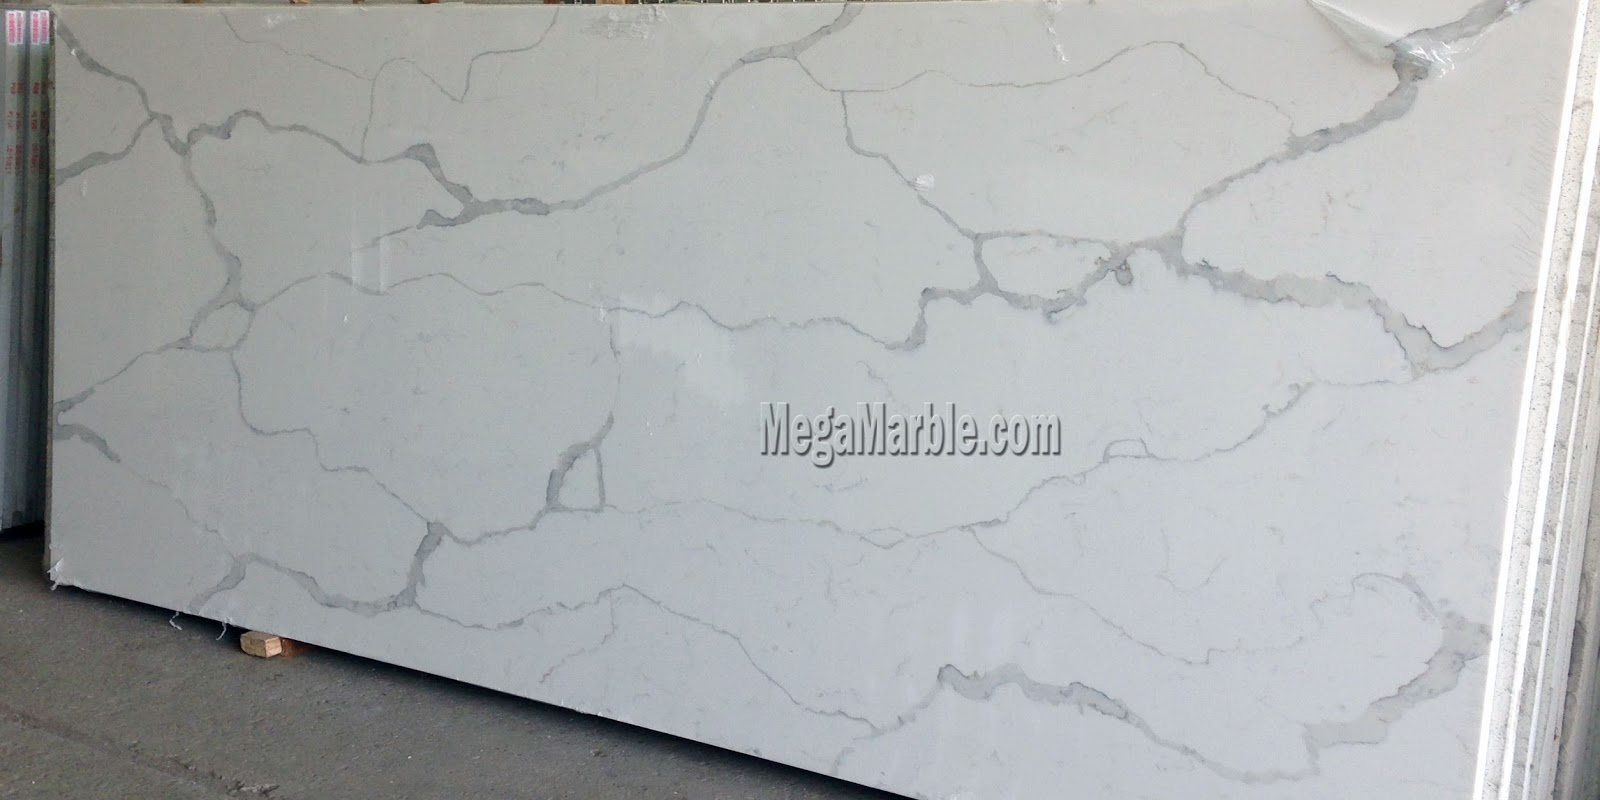 quartz countertops that look like marble white quartz countertops that look like marble quartz that looks like marble countertops nj